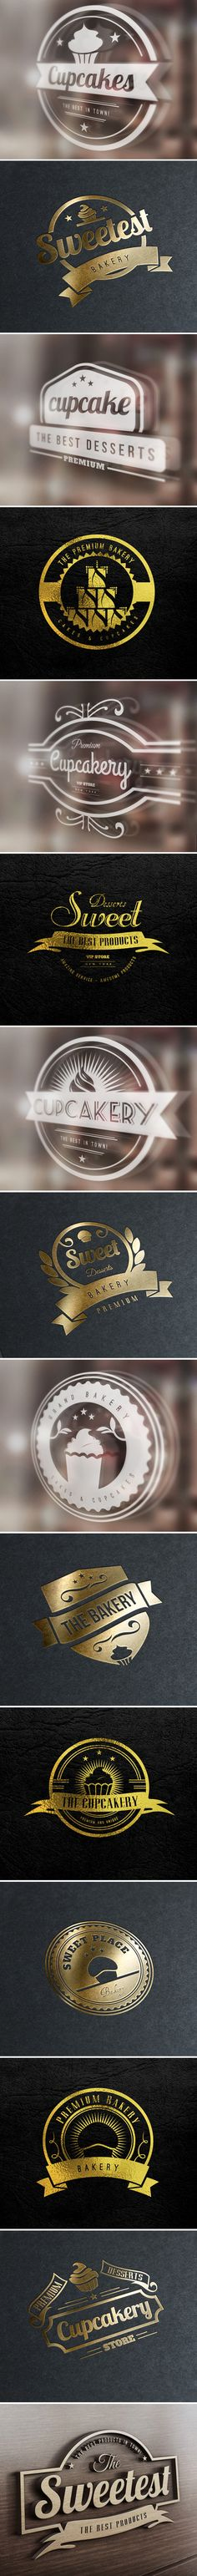 15 Bakery Cupcakes and Cakes Labels & Badges Logos by Design District, via Behance